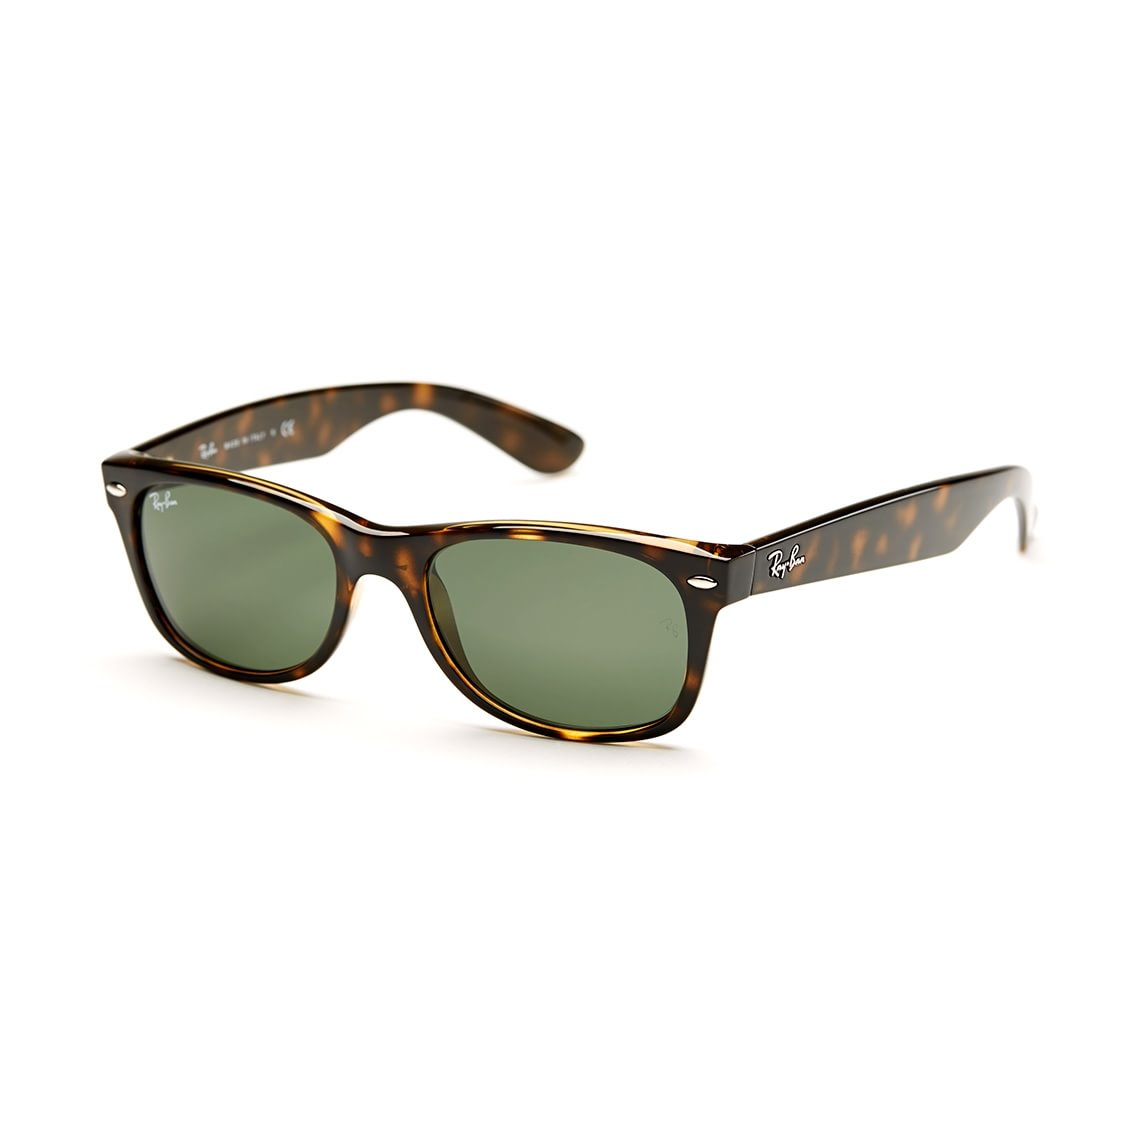 Ray-Ban New Wayfarer RB2132 902 52